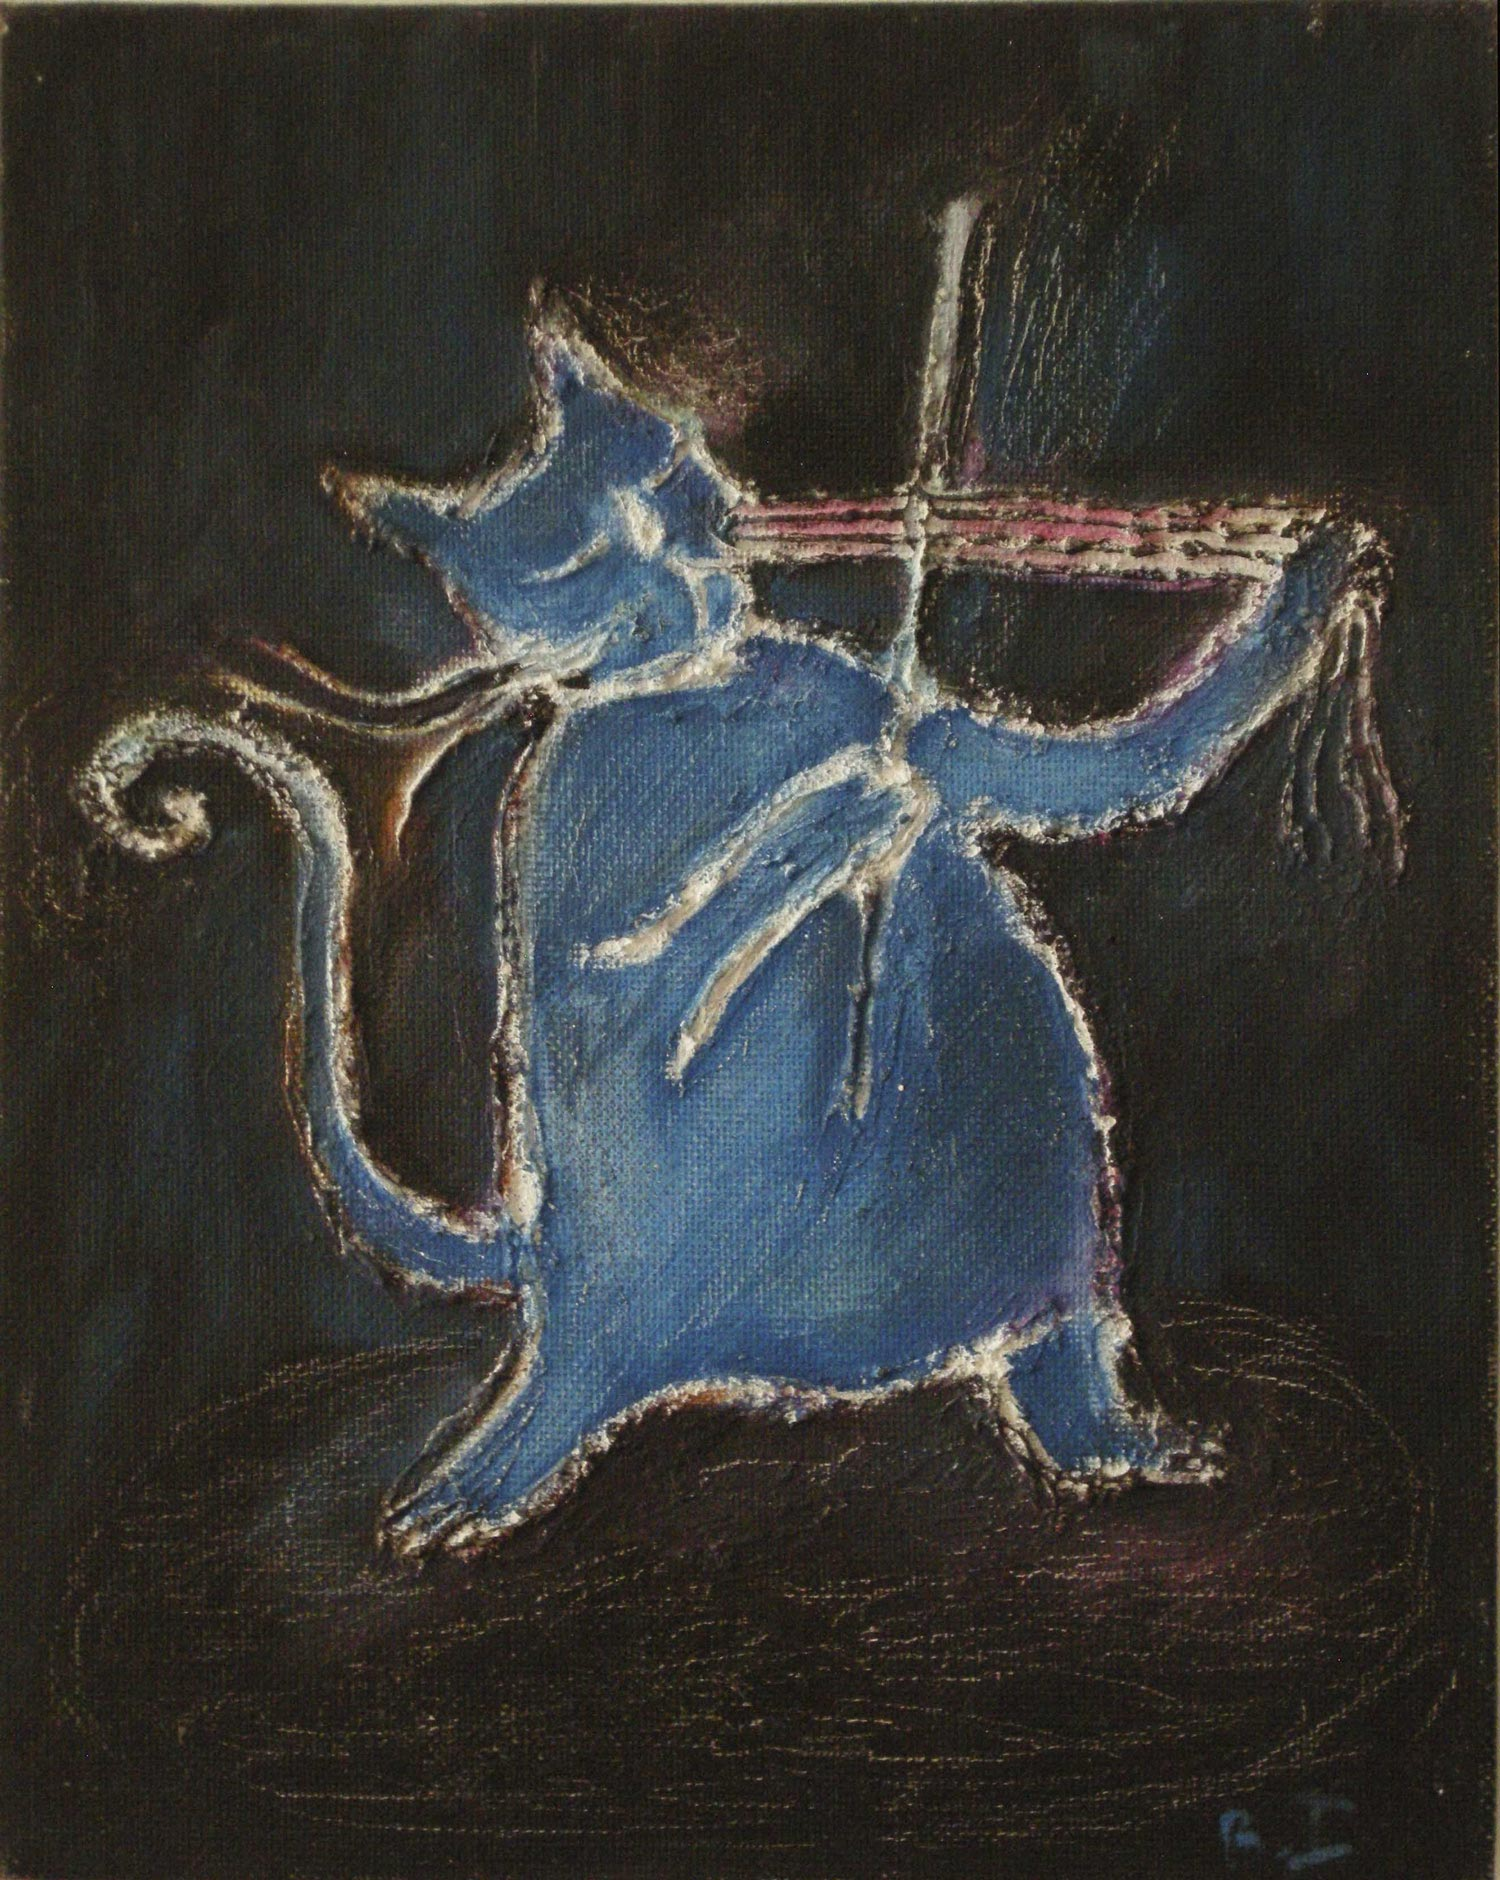 CAT VIOLIN (Blue)  Oil on Canvass Board | 18 x 25.5 cm | 2010  Buy Framed £260.00